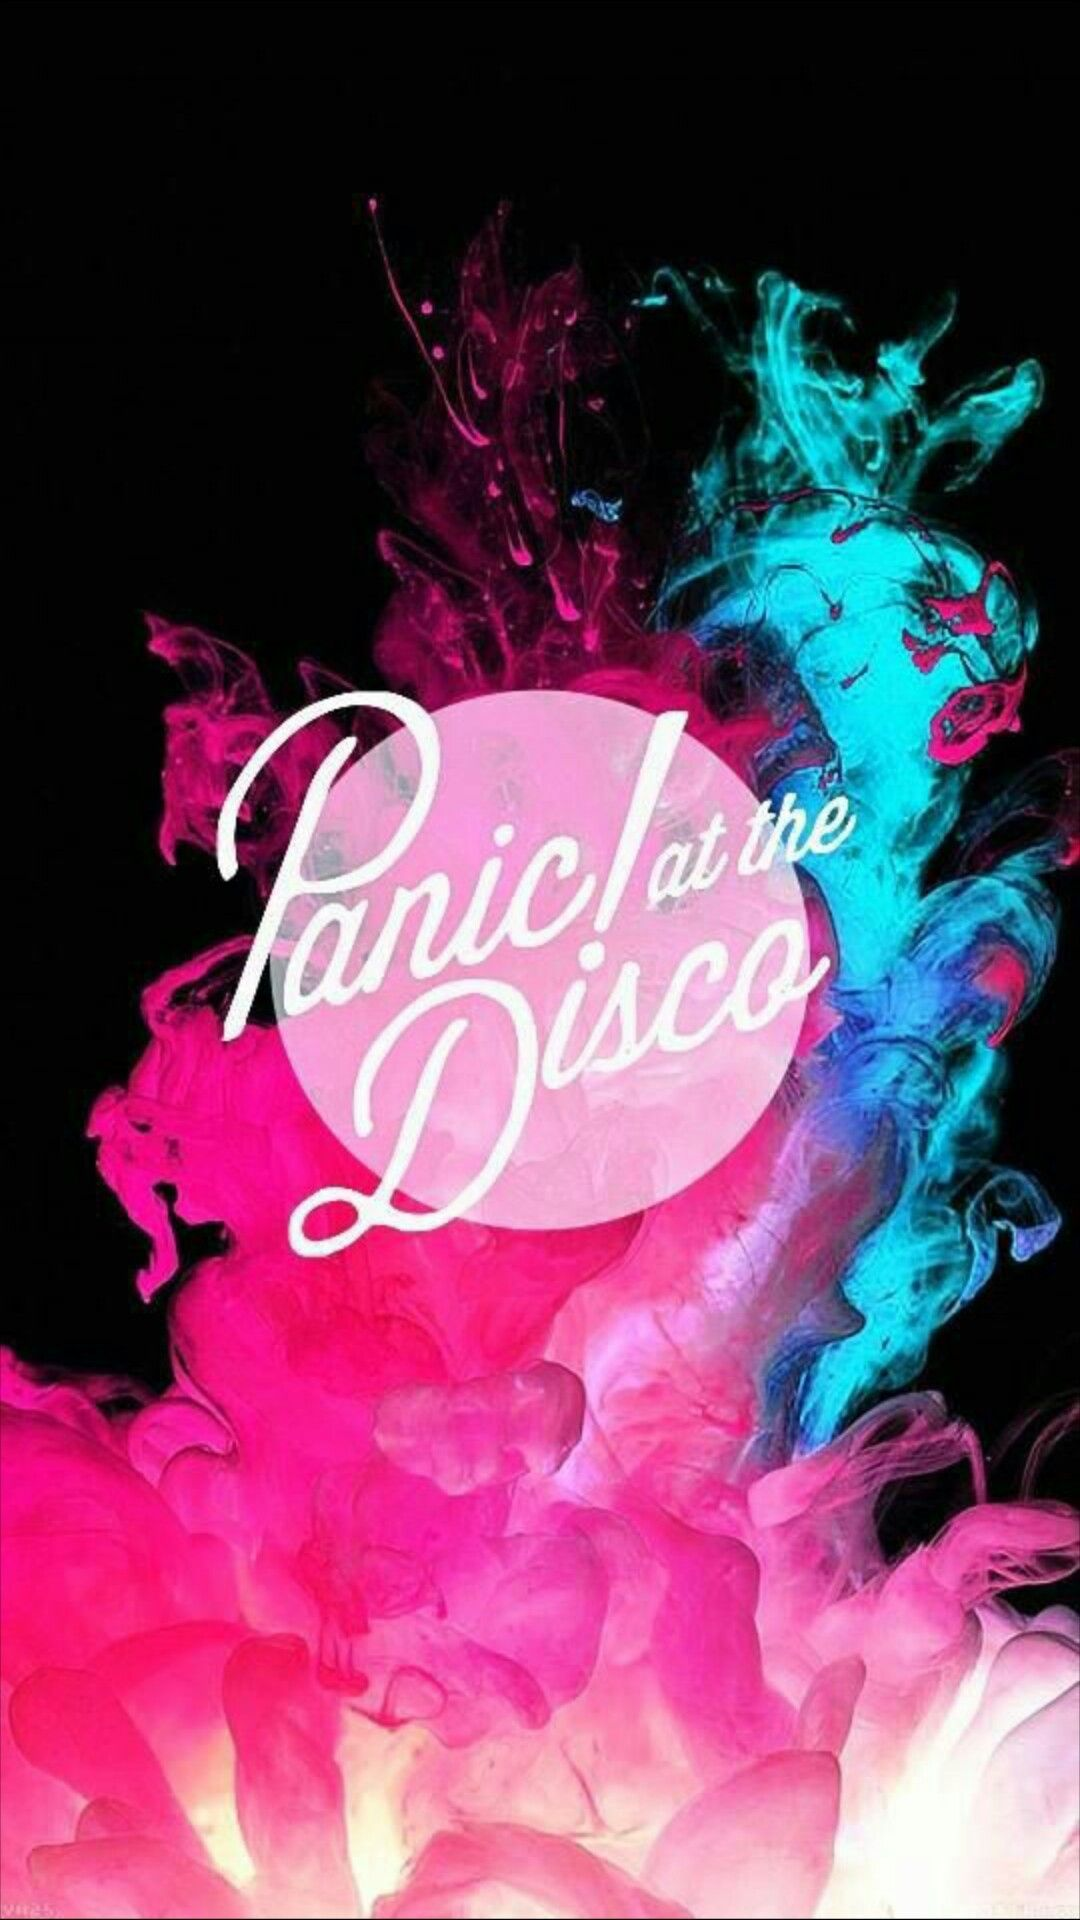 panic at the disco wallpaper 1080x1920 for iphone 5s Emo